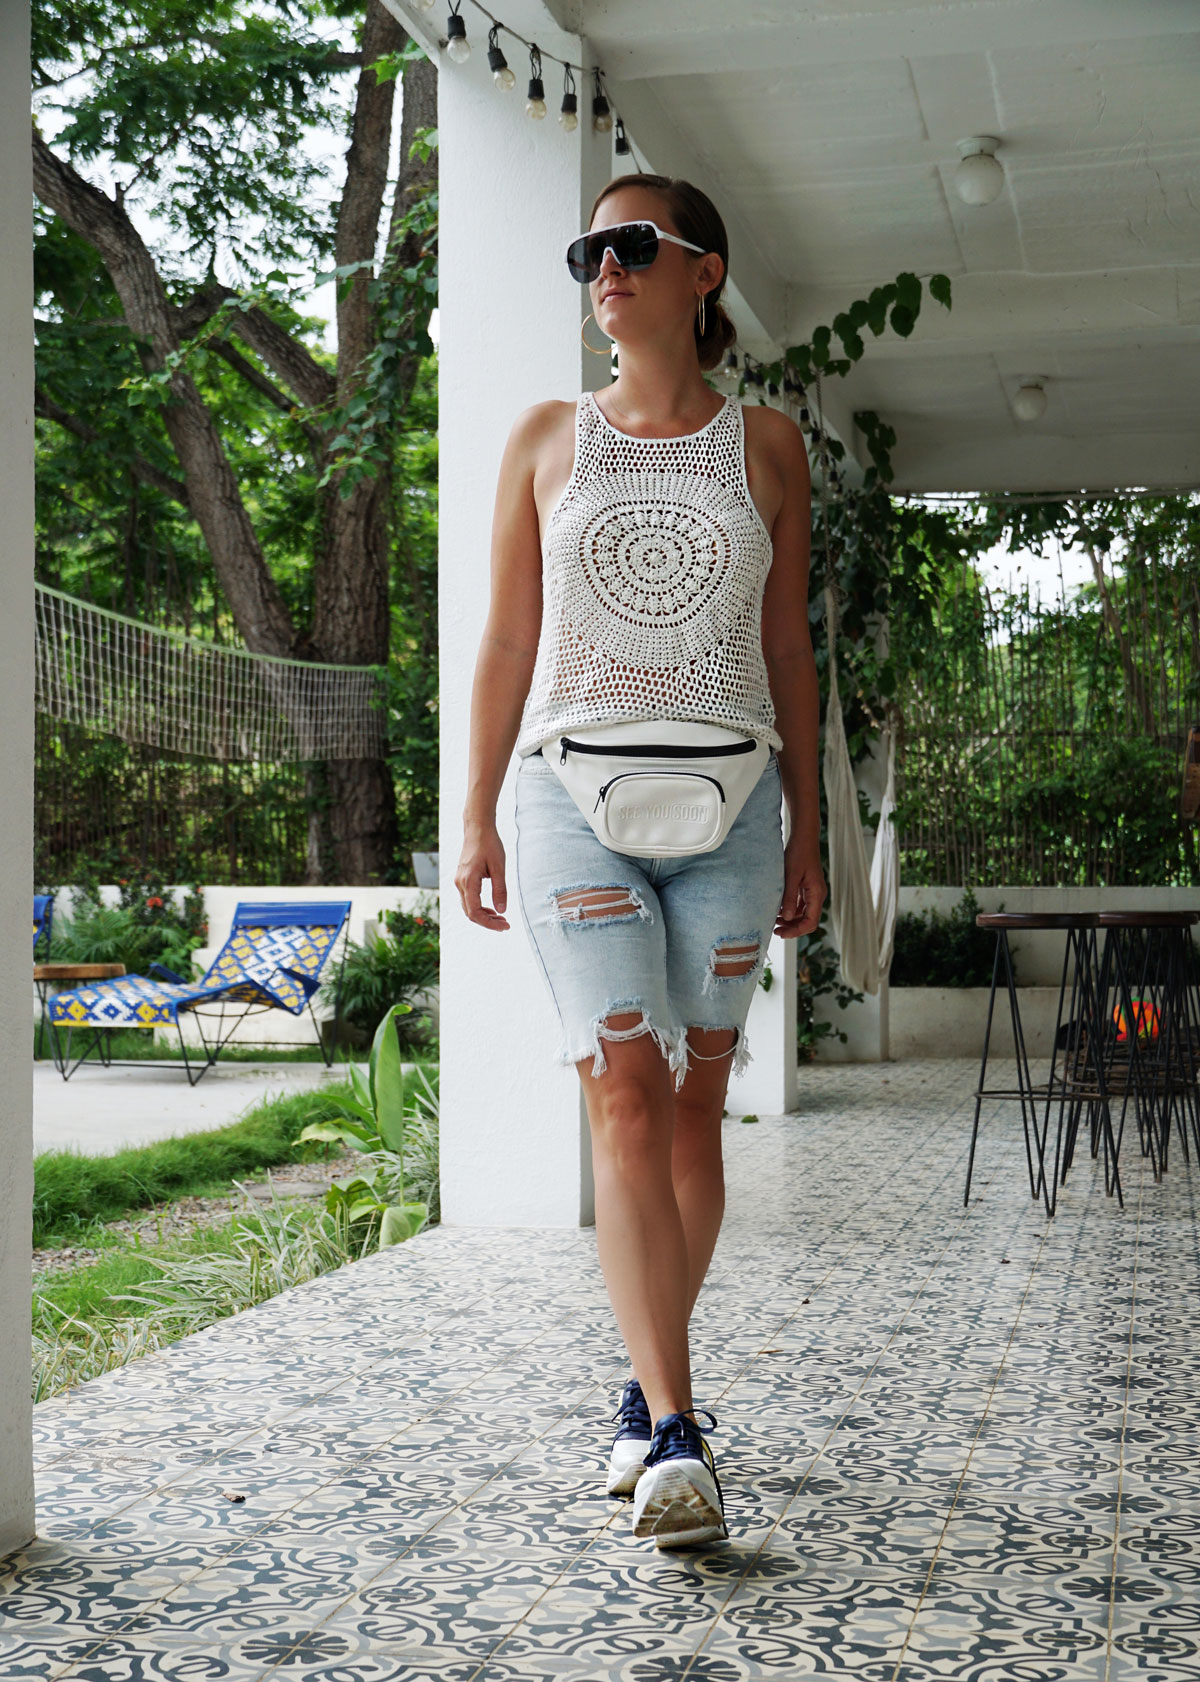 Andrea Steiner from fashion blog Strawberries 'n' Champagne based in Switzerland is wearing denim bermuda shorts with a white shirt, a fanny pack and sneakers.